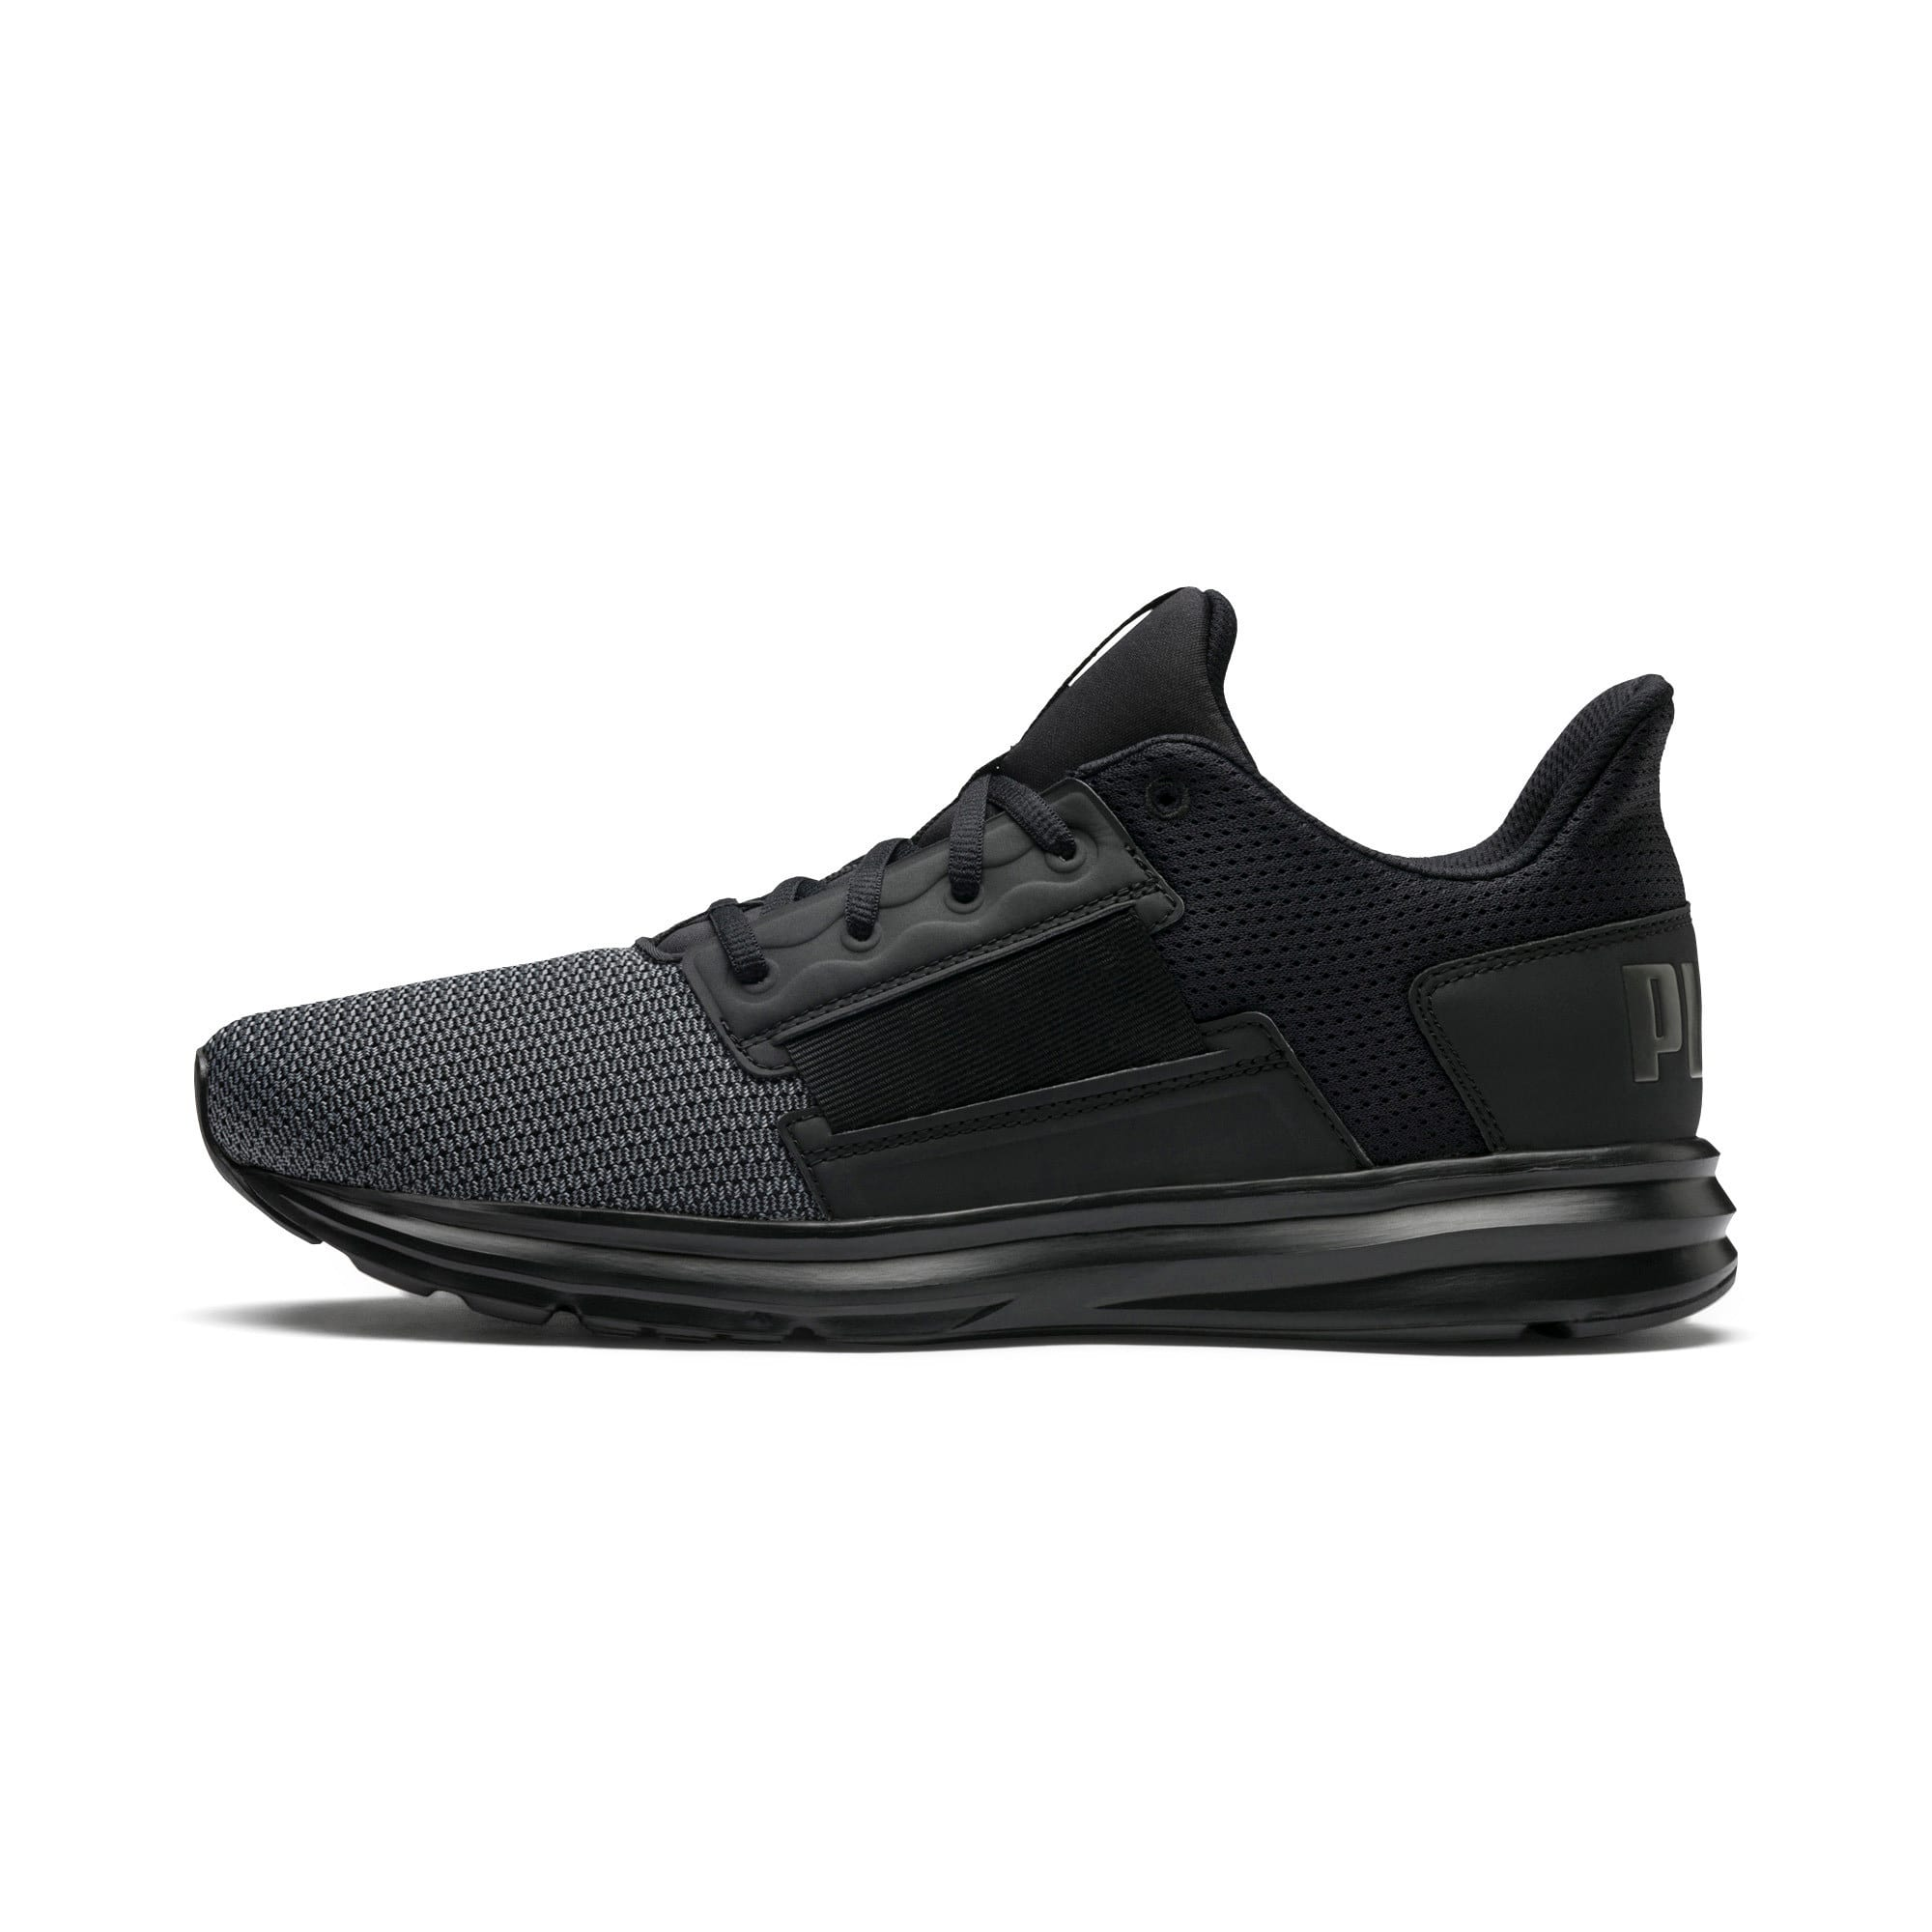 Thumbnail 1 of Enzo Street Men's Running Shoes, Black-Iron Gate-Aged Silver, medium-IND